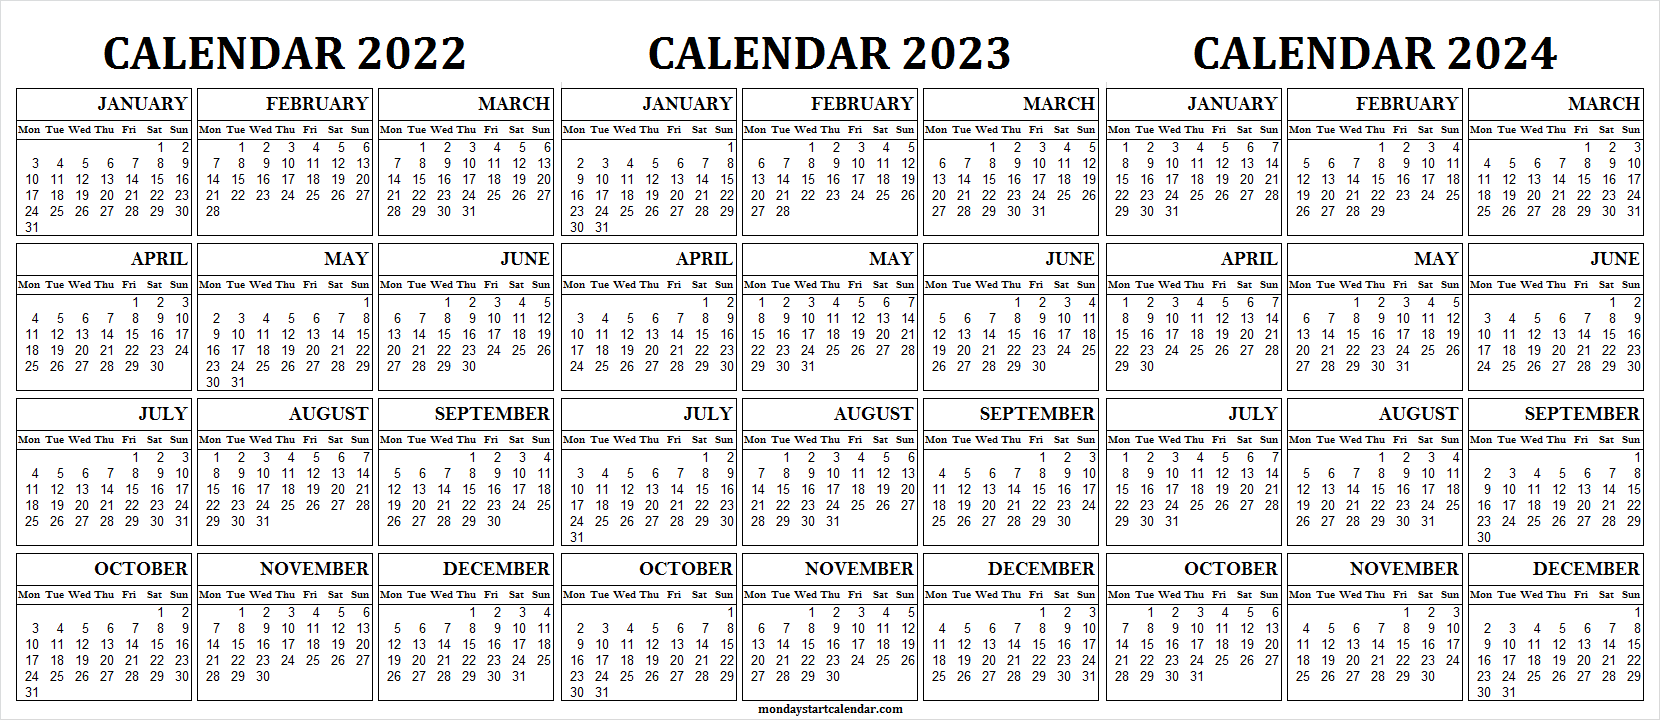 Printable Calendar from 2022 to 2024